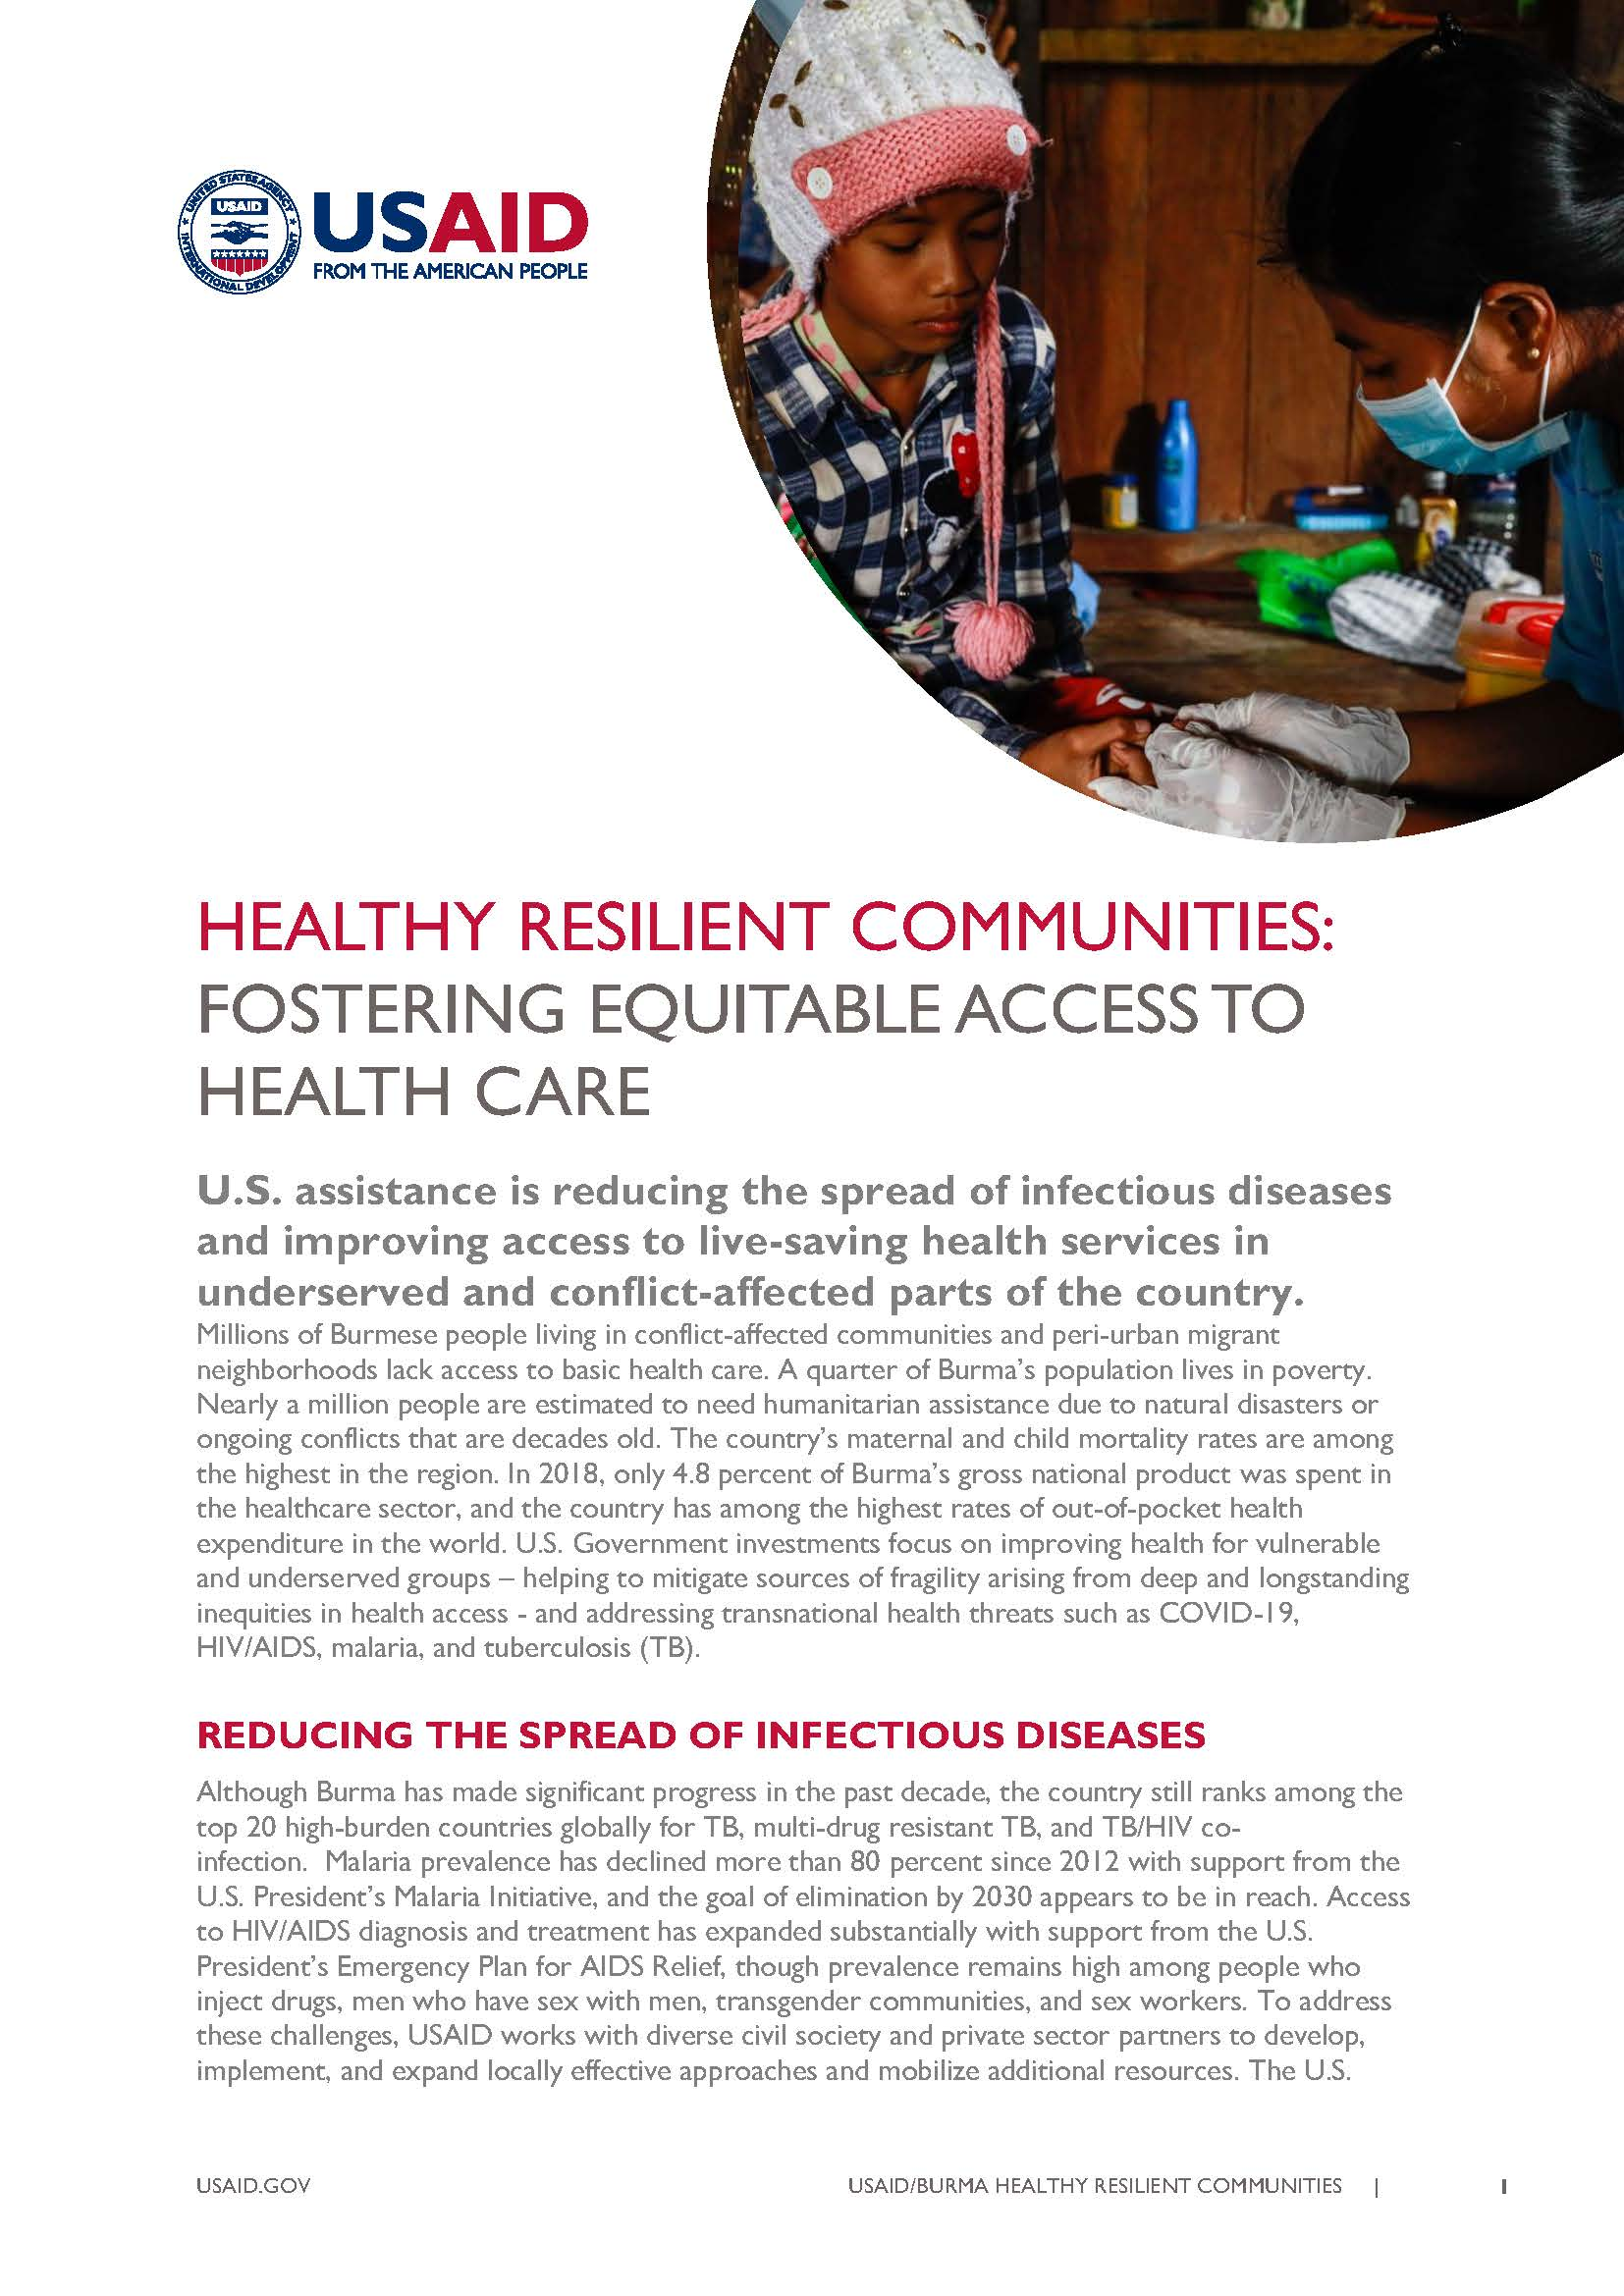 Healthy Resilient Communities: Fostering Equitable Access to Health Care